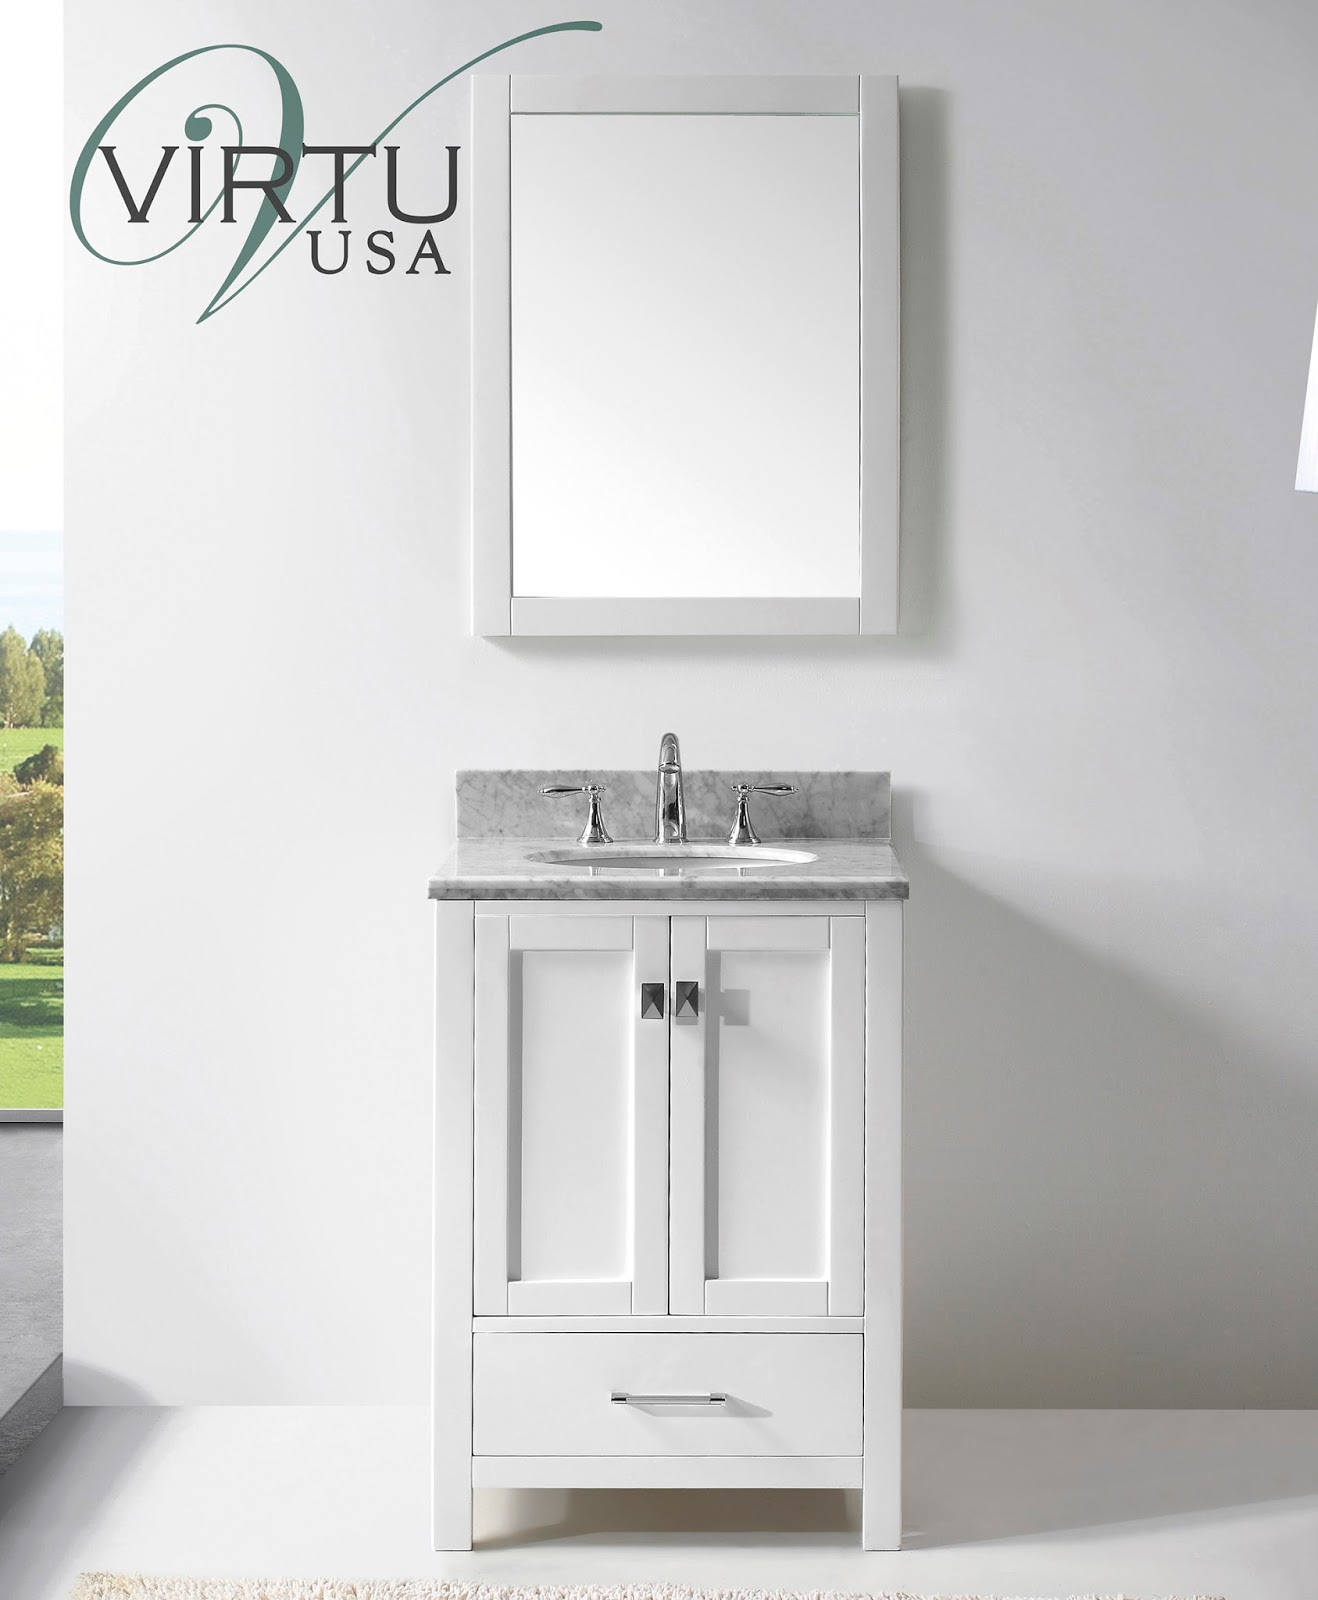 Discount Bathroom Vanities: Stylish Space with a Small Bathroom Vanity